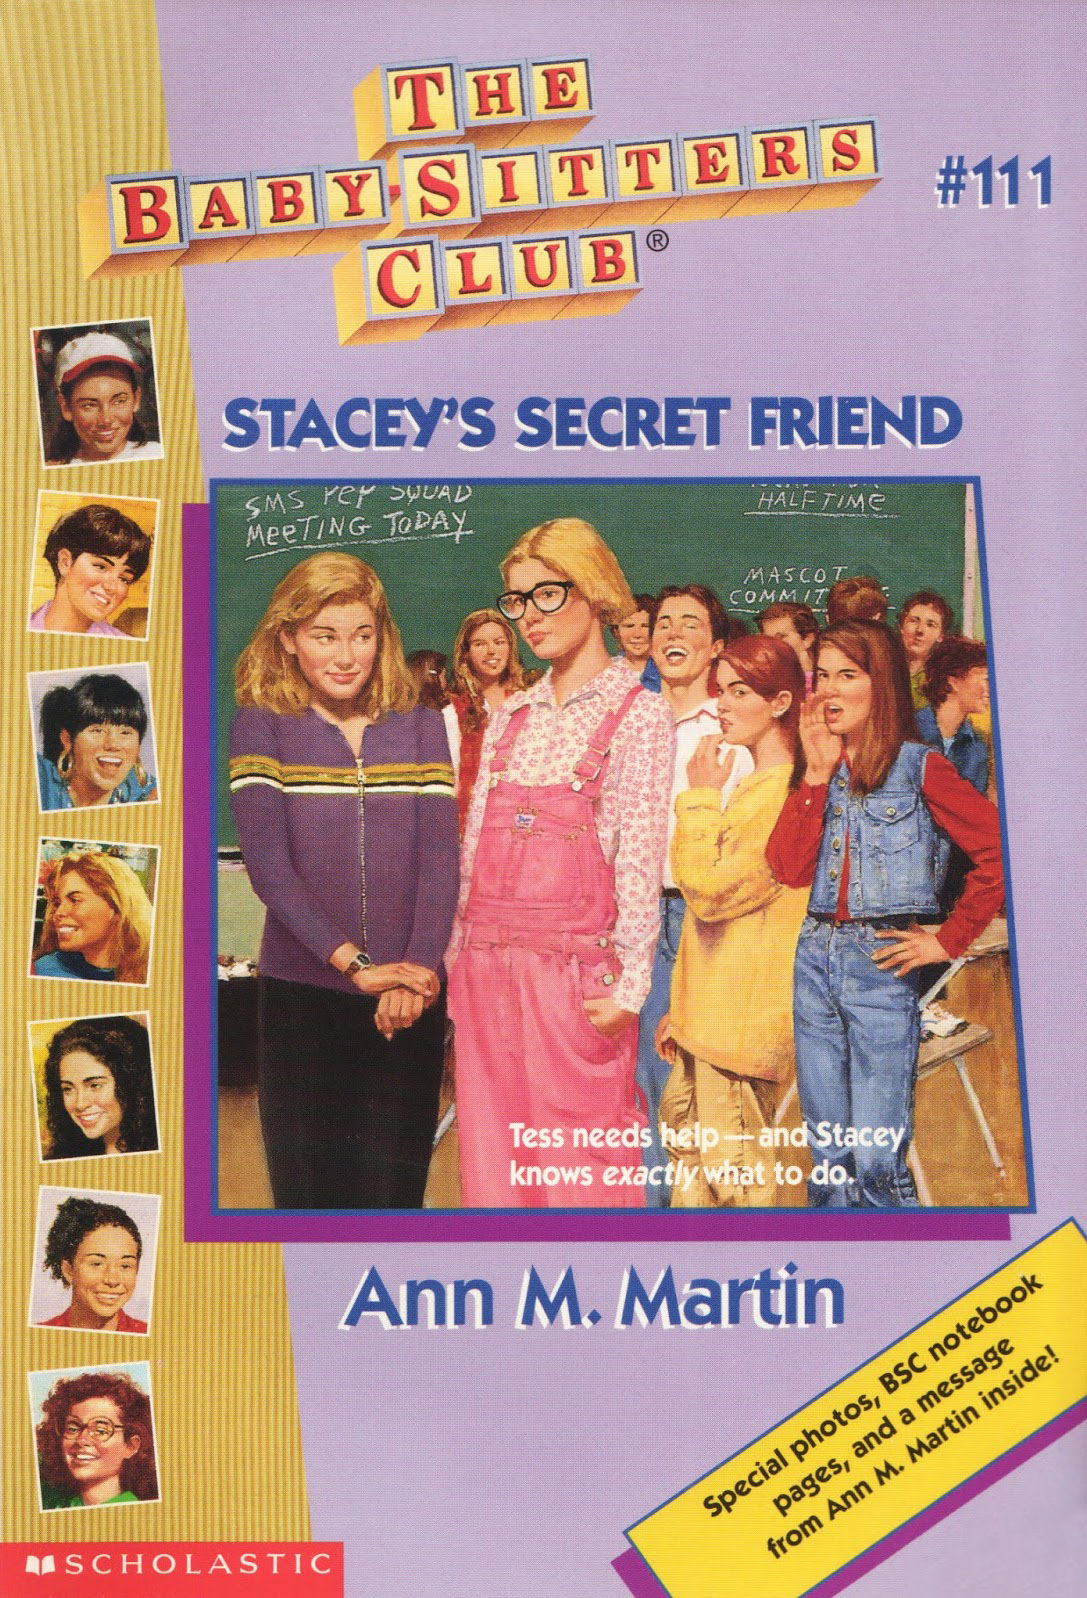 Stacey's Secret Friend